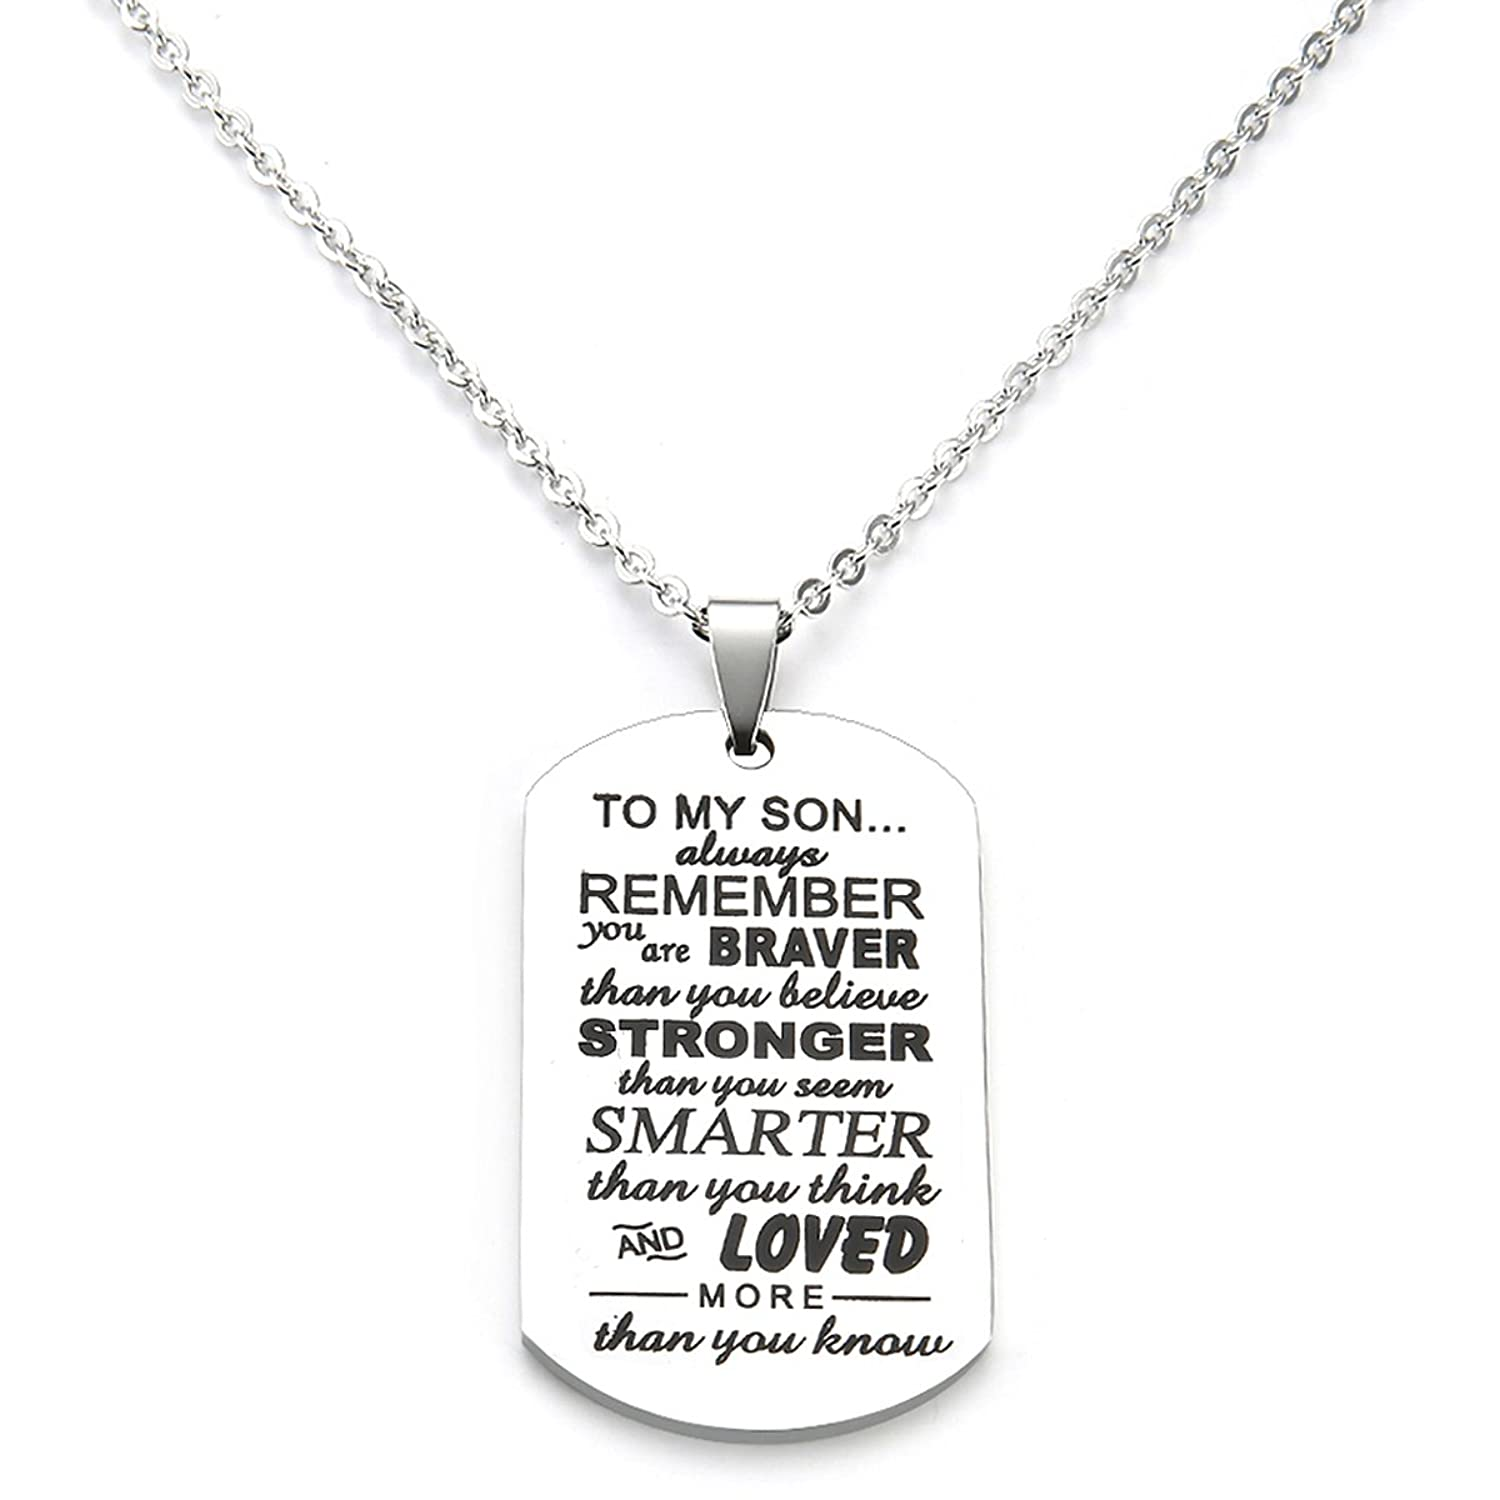 To My Son Gifts Always Remember To My Son Dog Tag From Dad Mens Boys Necklace Military Chain Air Force Pendant Thanksgiving and Child Birthday Best Souvenirs